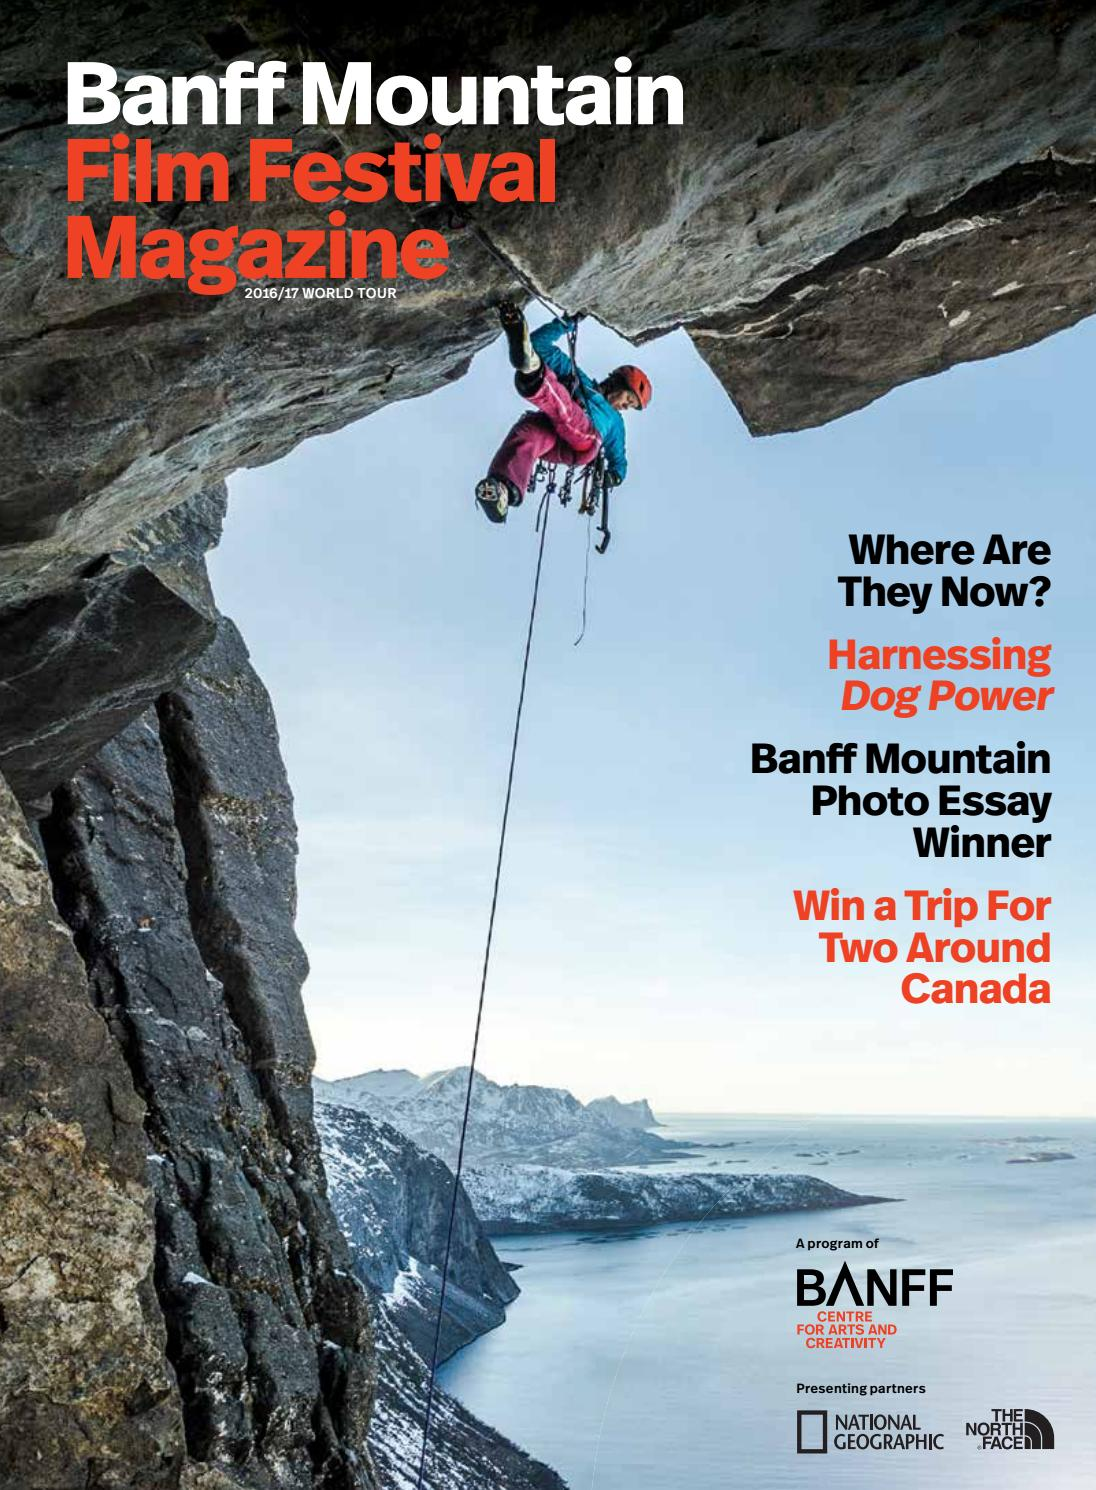 vancouver international mountain film festival by nsn features  banff mountain film festival magazine 2016